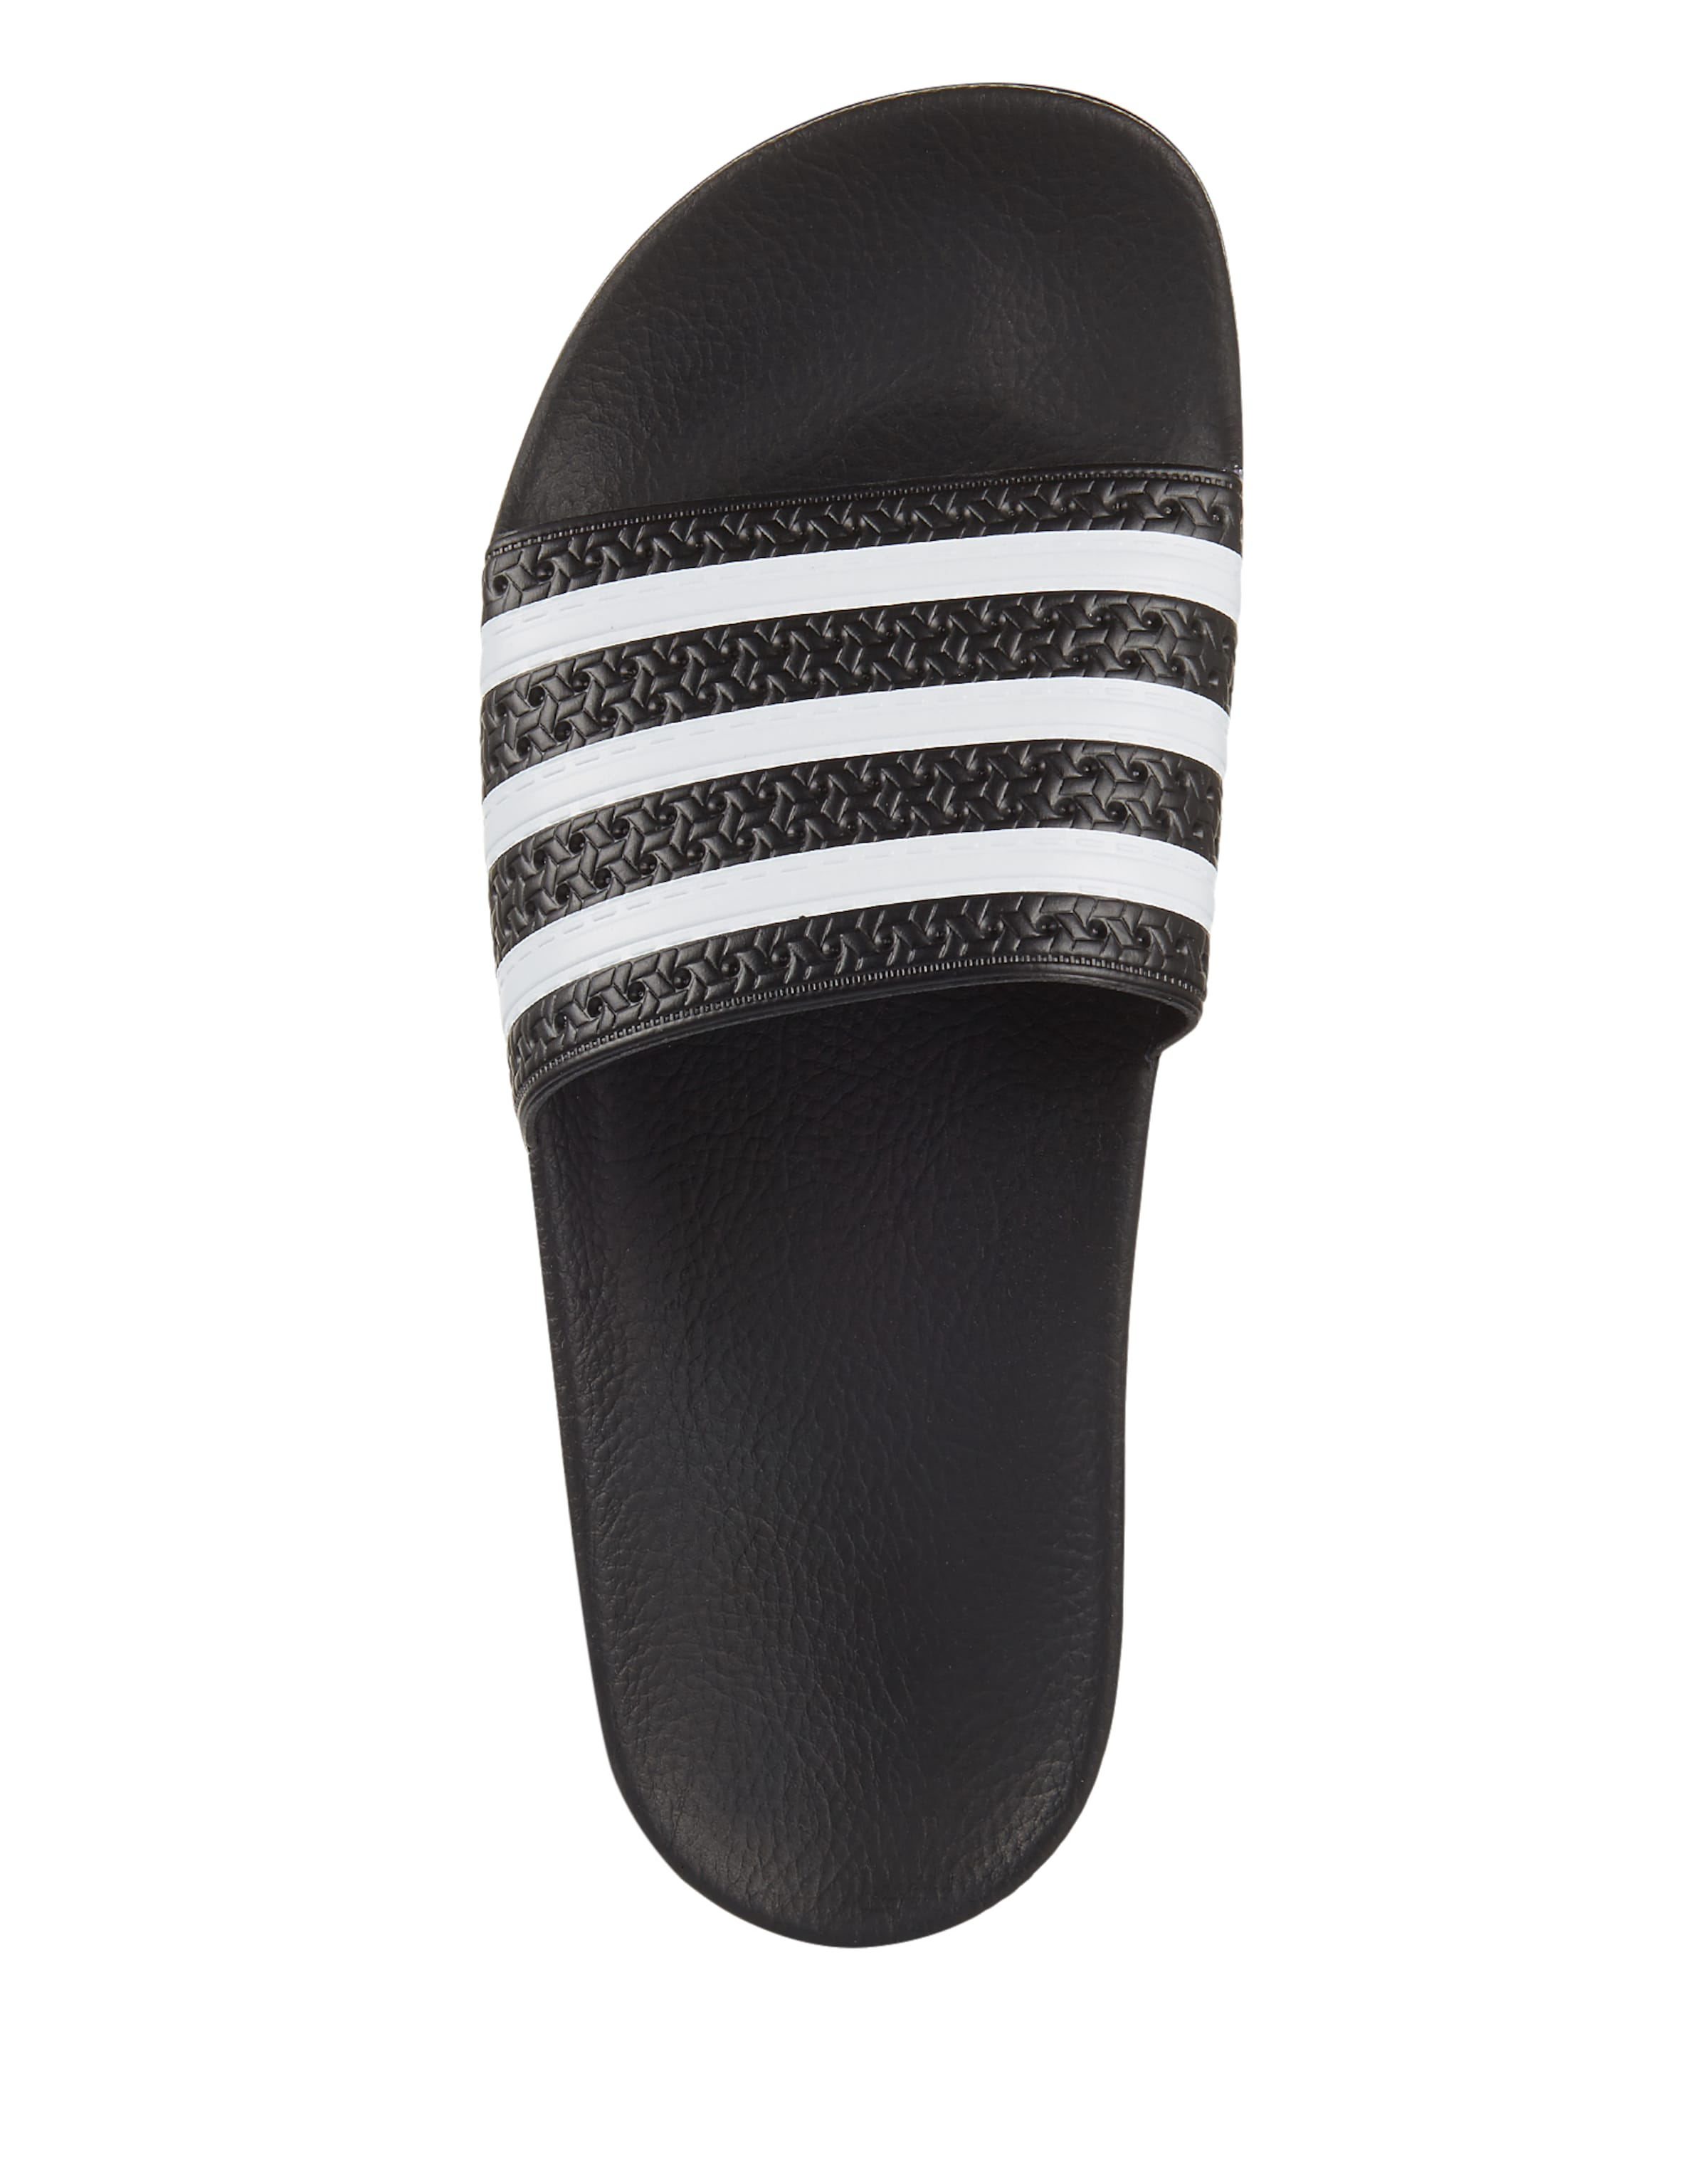 slider In Originals SchwarzWeiß Adidas Bade 'adilette' K1JTFlc3